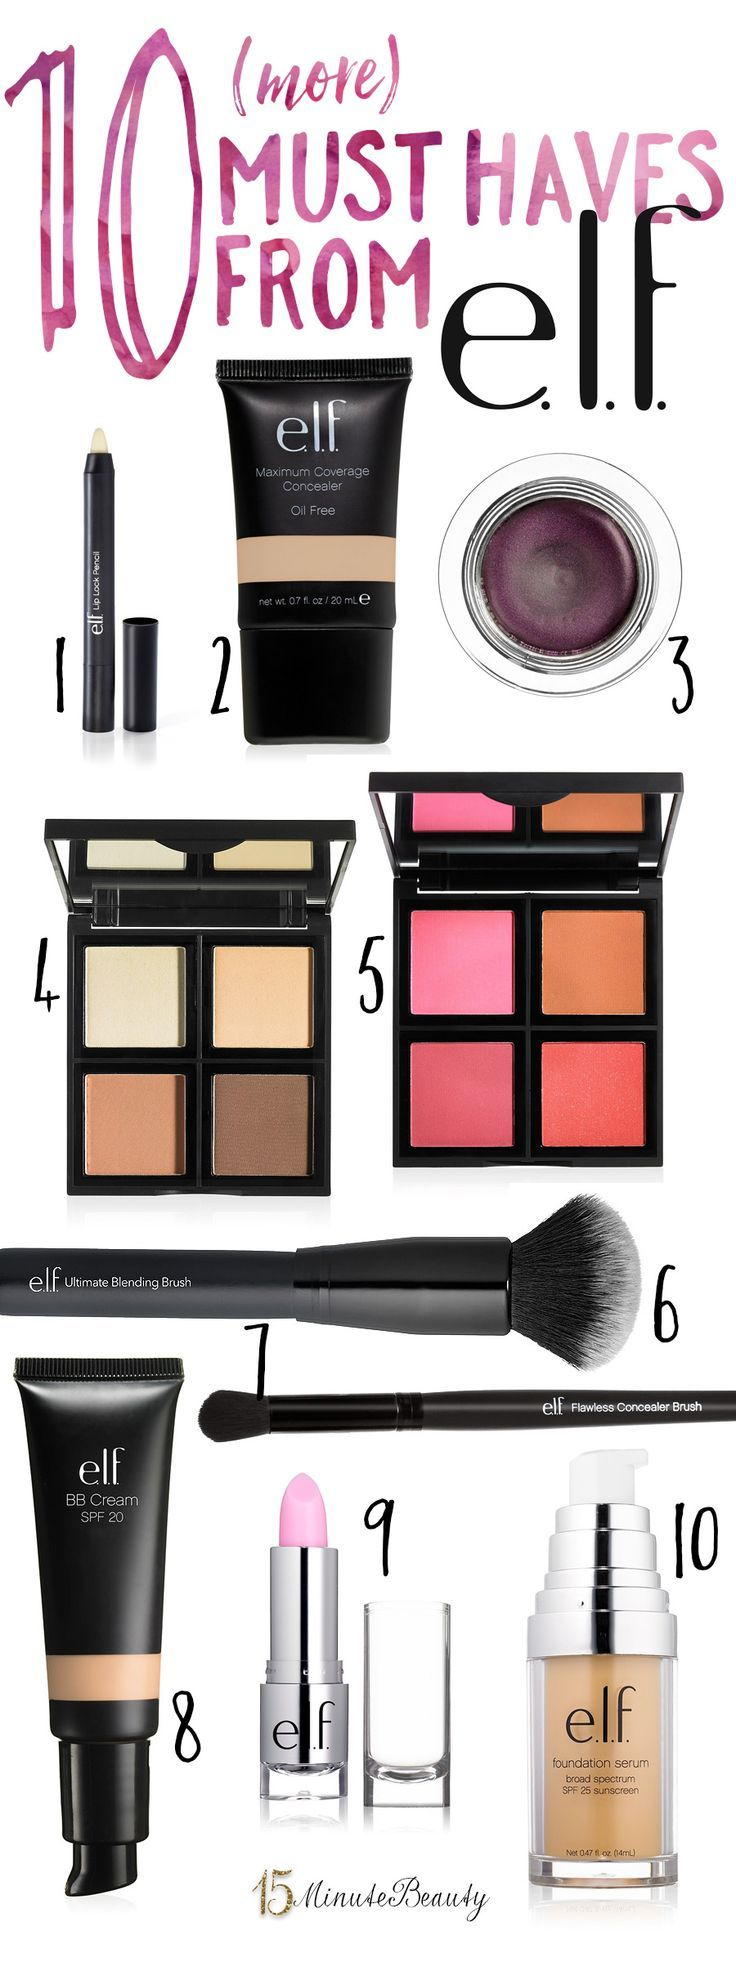 the best #makeup products from ELF!: